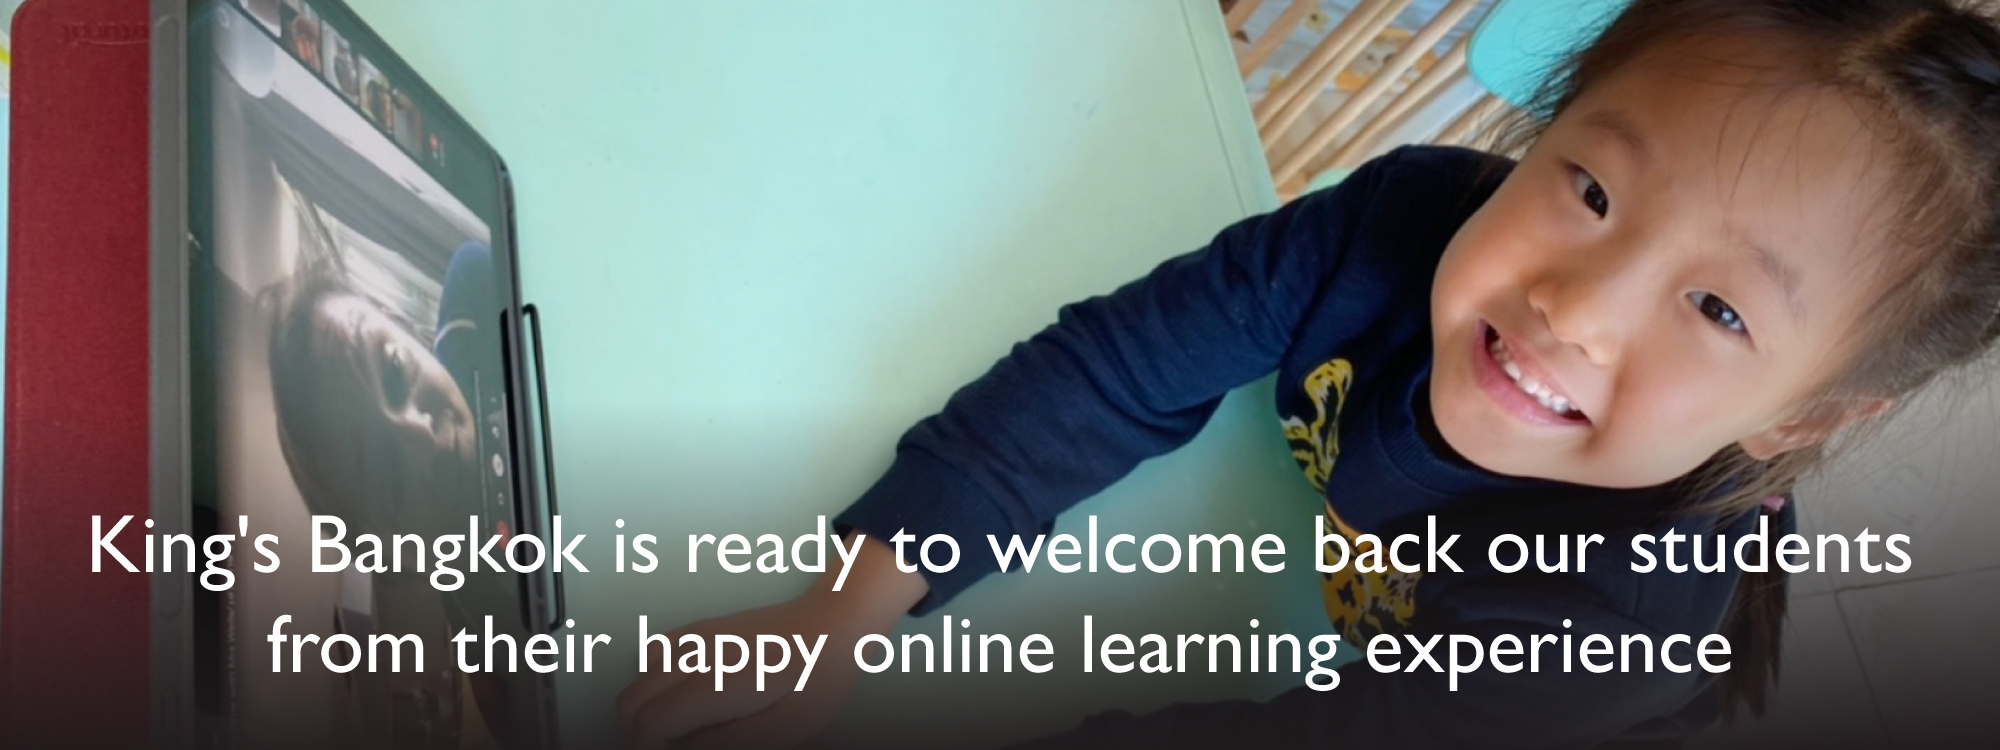 Happy online learning experience